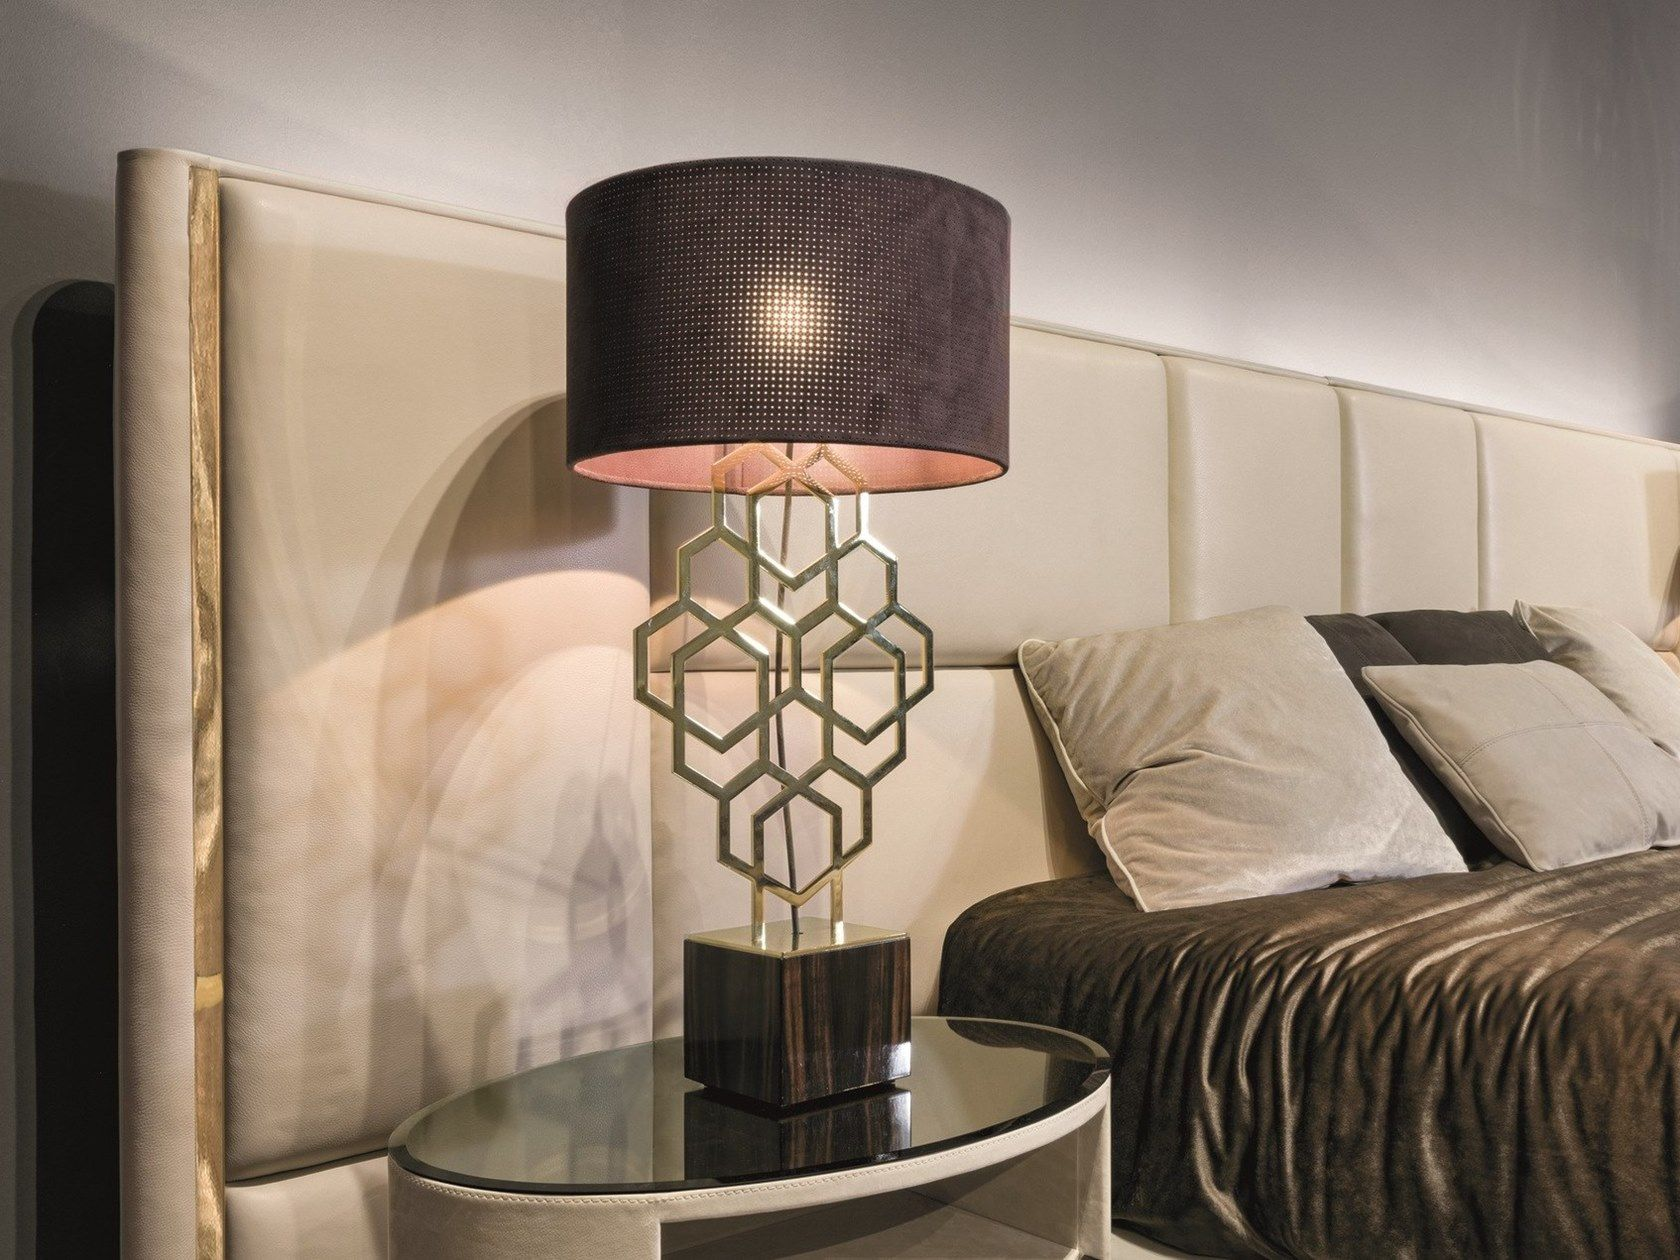 Direct Light Table Lamp Anouk Table Lamp By Longhi Table Lamp Table Lamp Design Light Table